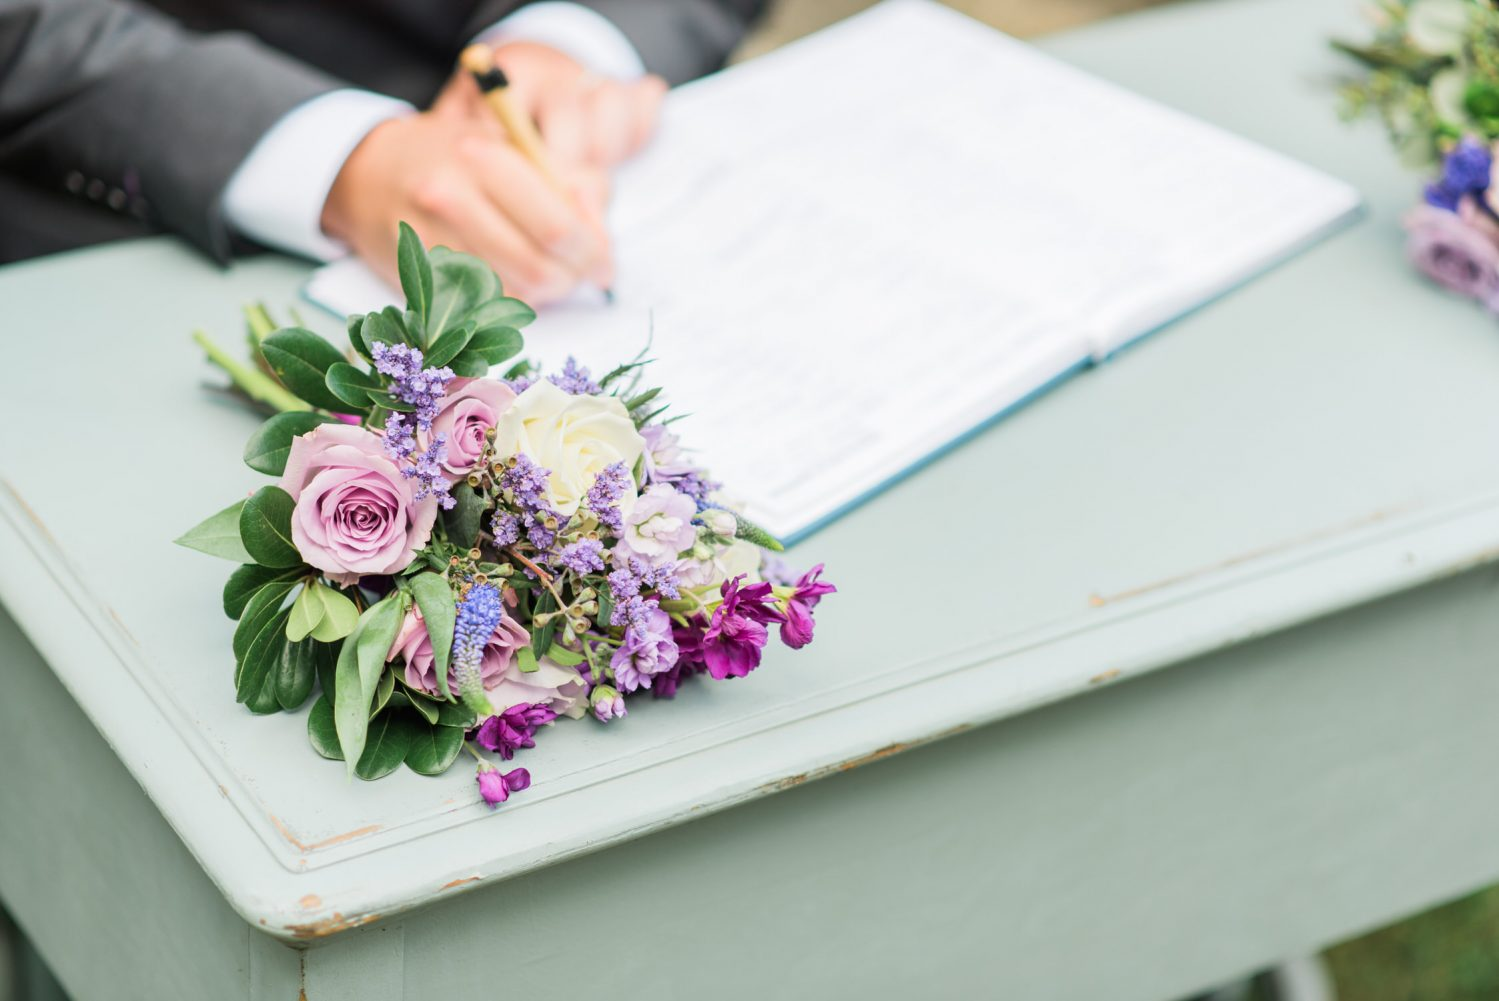 Signing of the wedding contract